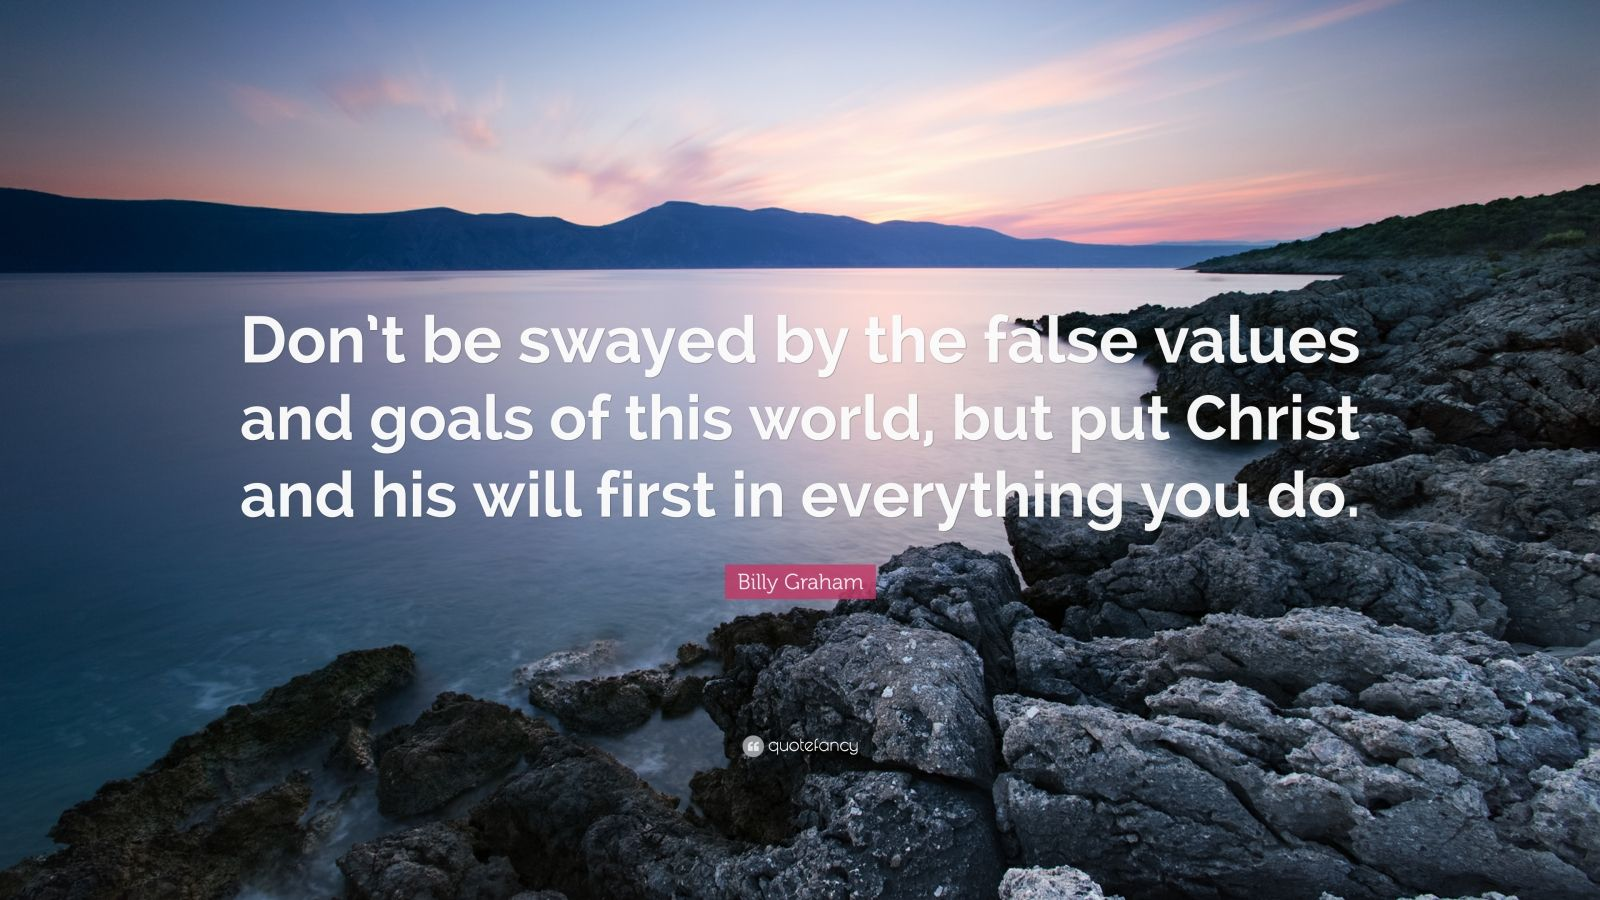 """Billy Graham Quote: """"Don't be swayed by the false values and goals of this world, but put Christ and his will first in everything you do."""""""